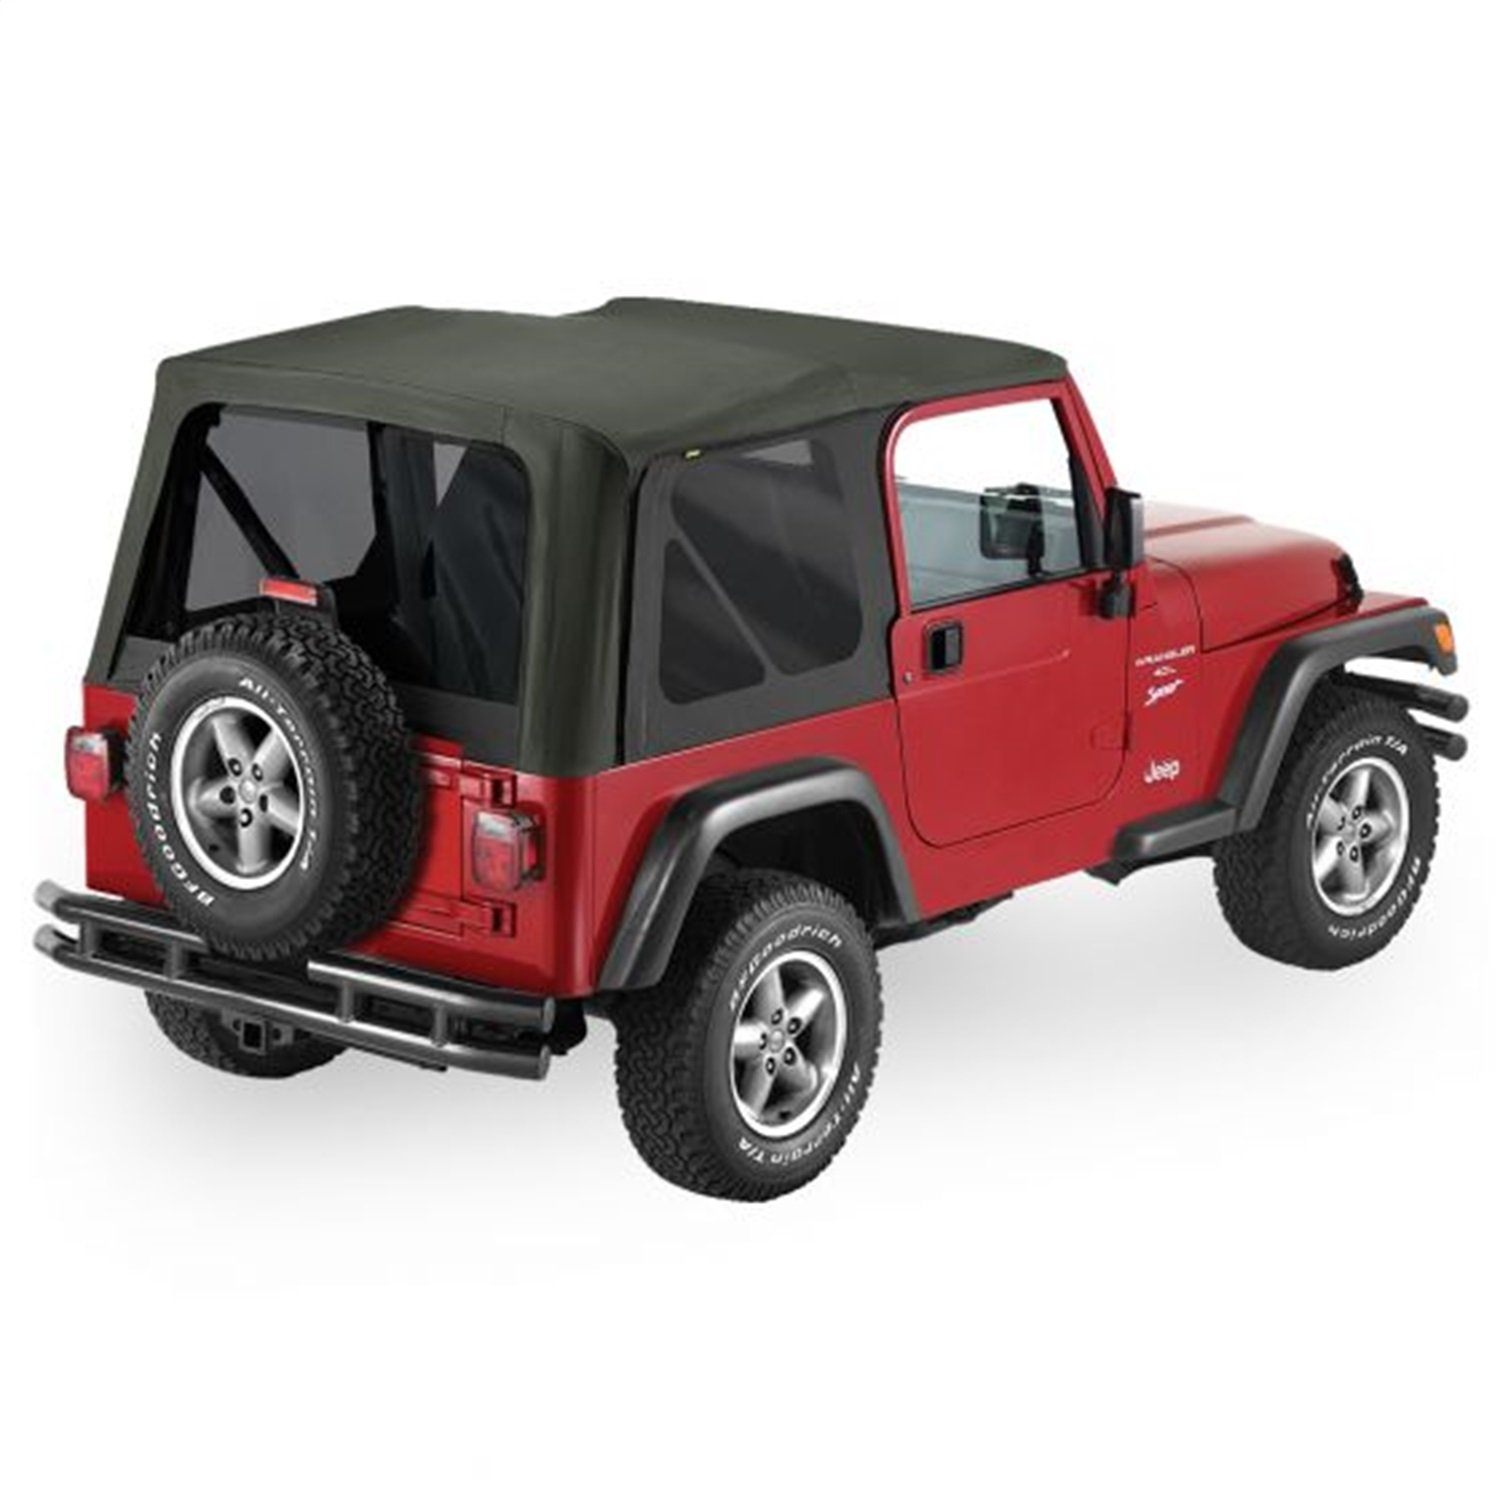 Pavement Ends by Bestop 51148-15 Black Denim Replay Replacement Soft Top Tinted Windows-No door skins included-No frame hardware included 1997-2002 Jeep Wrangler by Pavement Ends